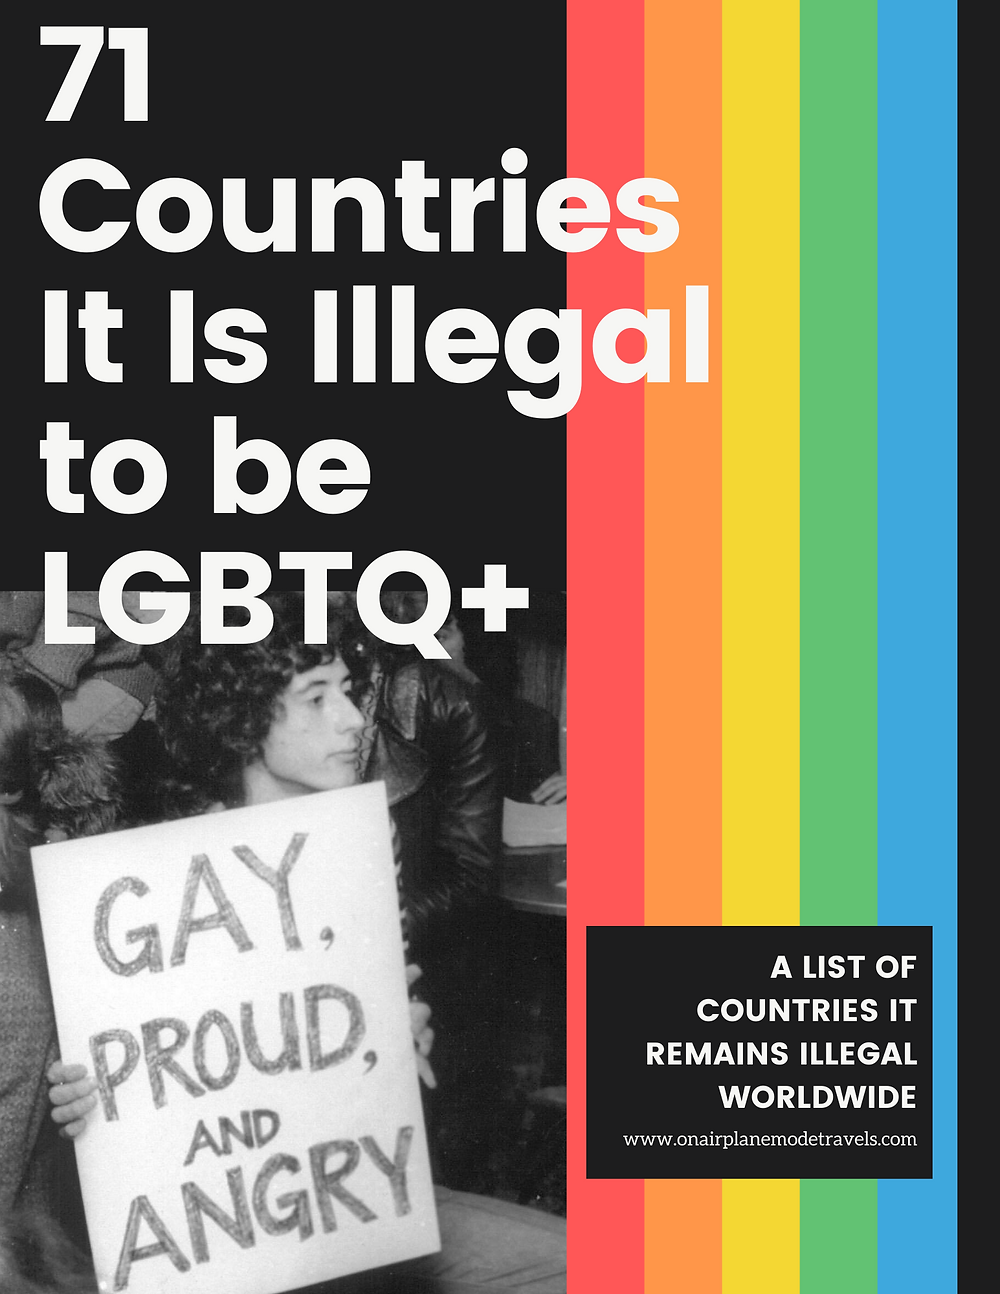 71 Countries it is Illegal to be LGBTQ+ | On Airplane Mode